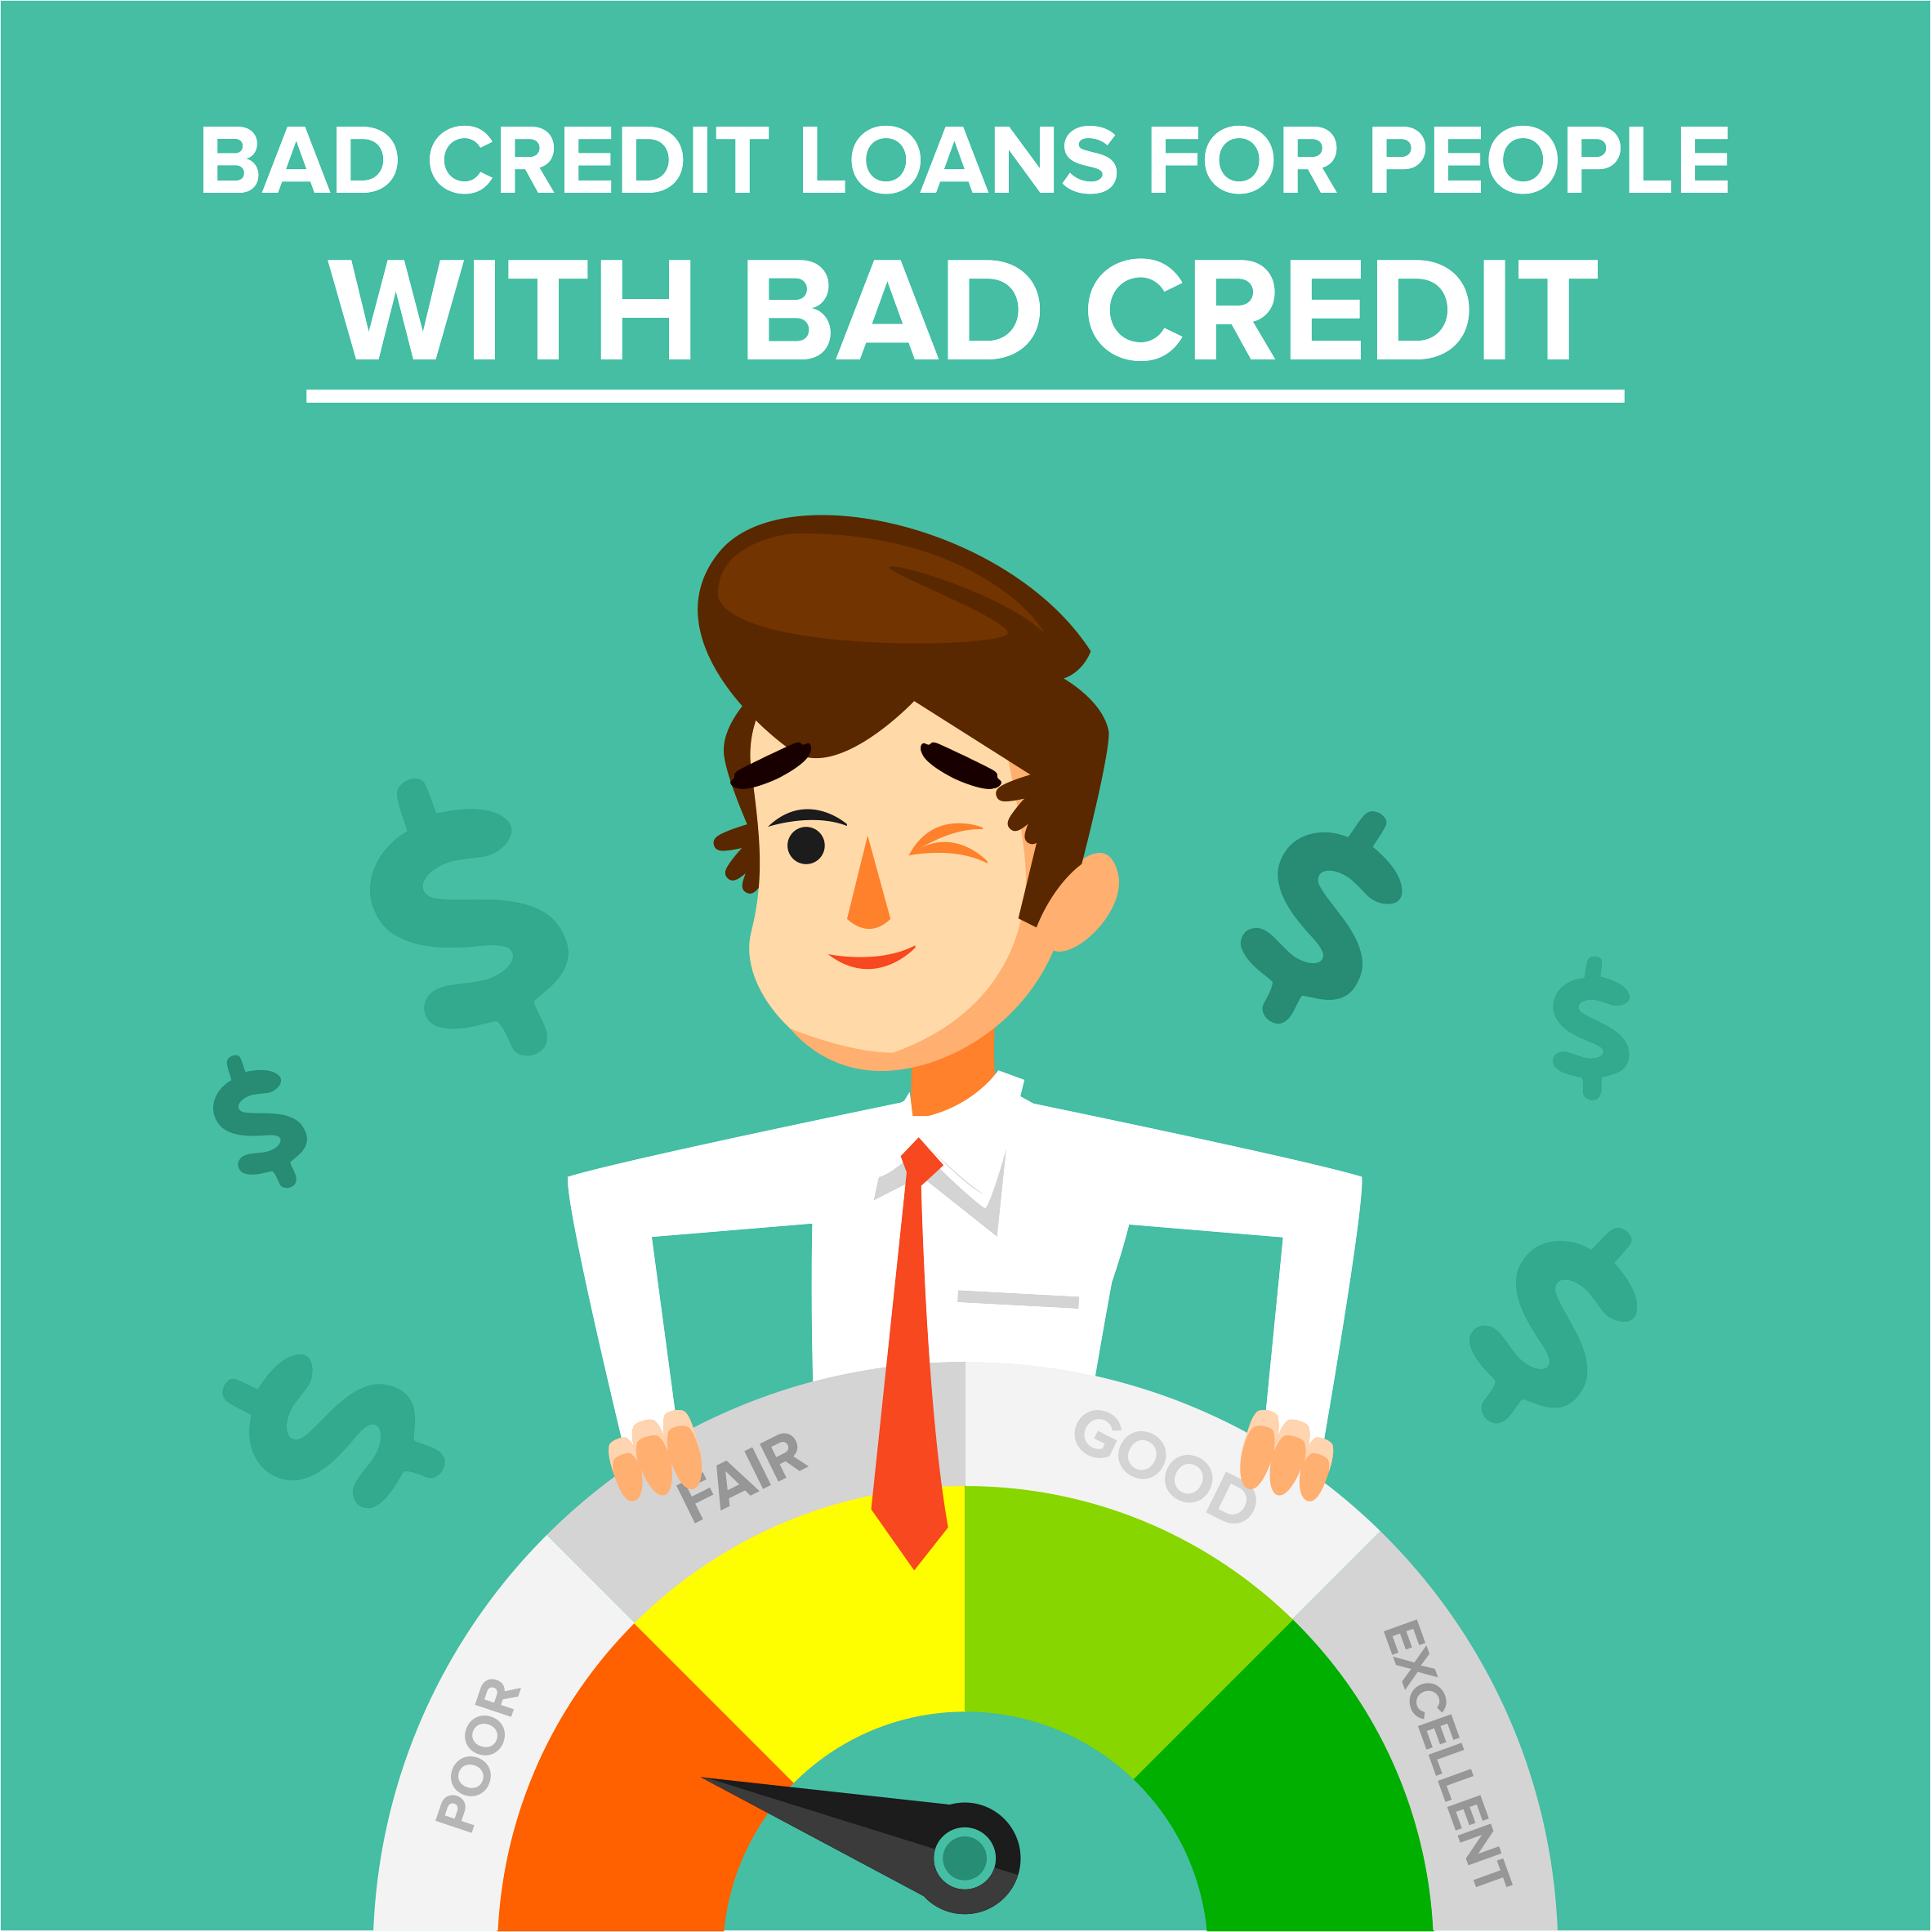 Bad Credit Loan >> Bad Credit Loans For People With Bad Credit Loan Away